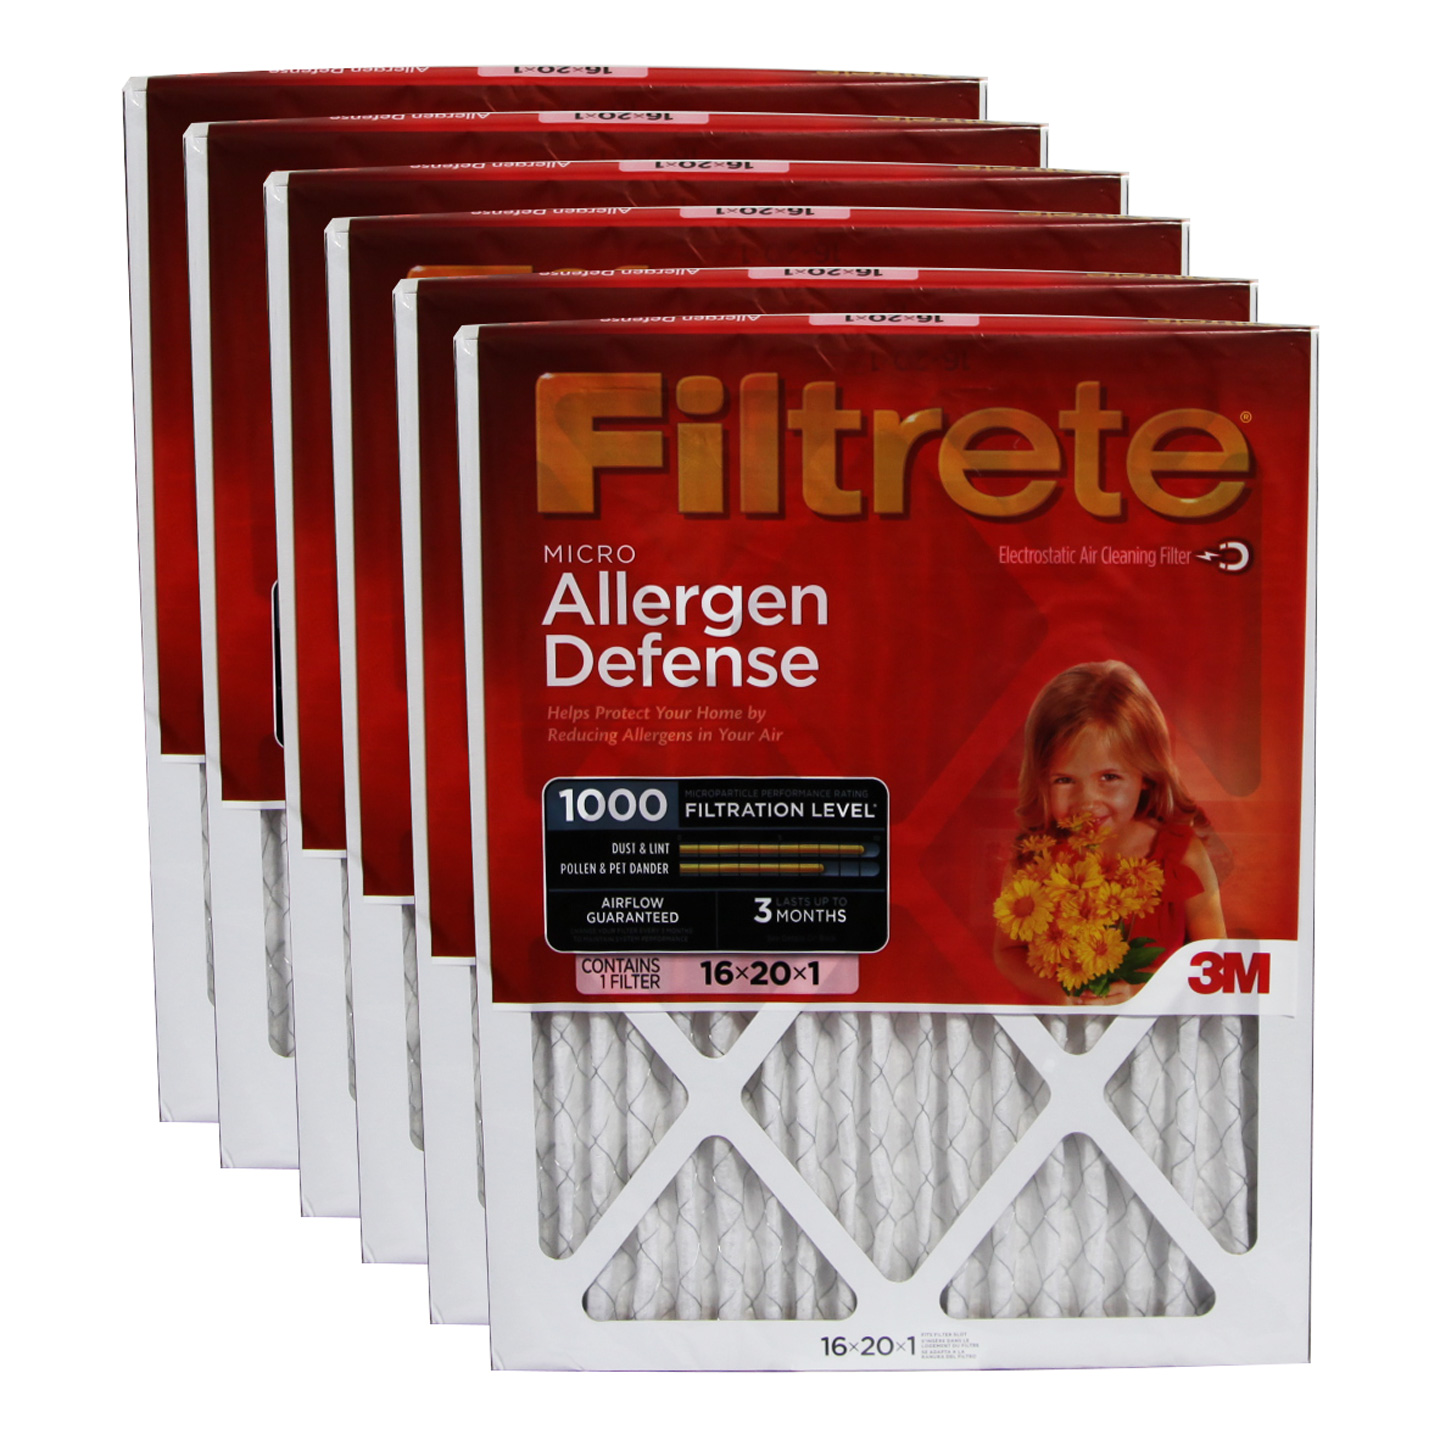 3M Filtrete 9800DC-6 Micro Allergen Reduction Filters (6 Pack) FILTRETE_MICRO_16x20x1_6_PACK